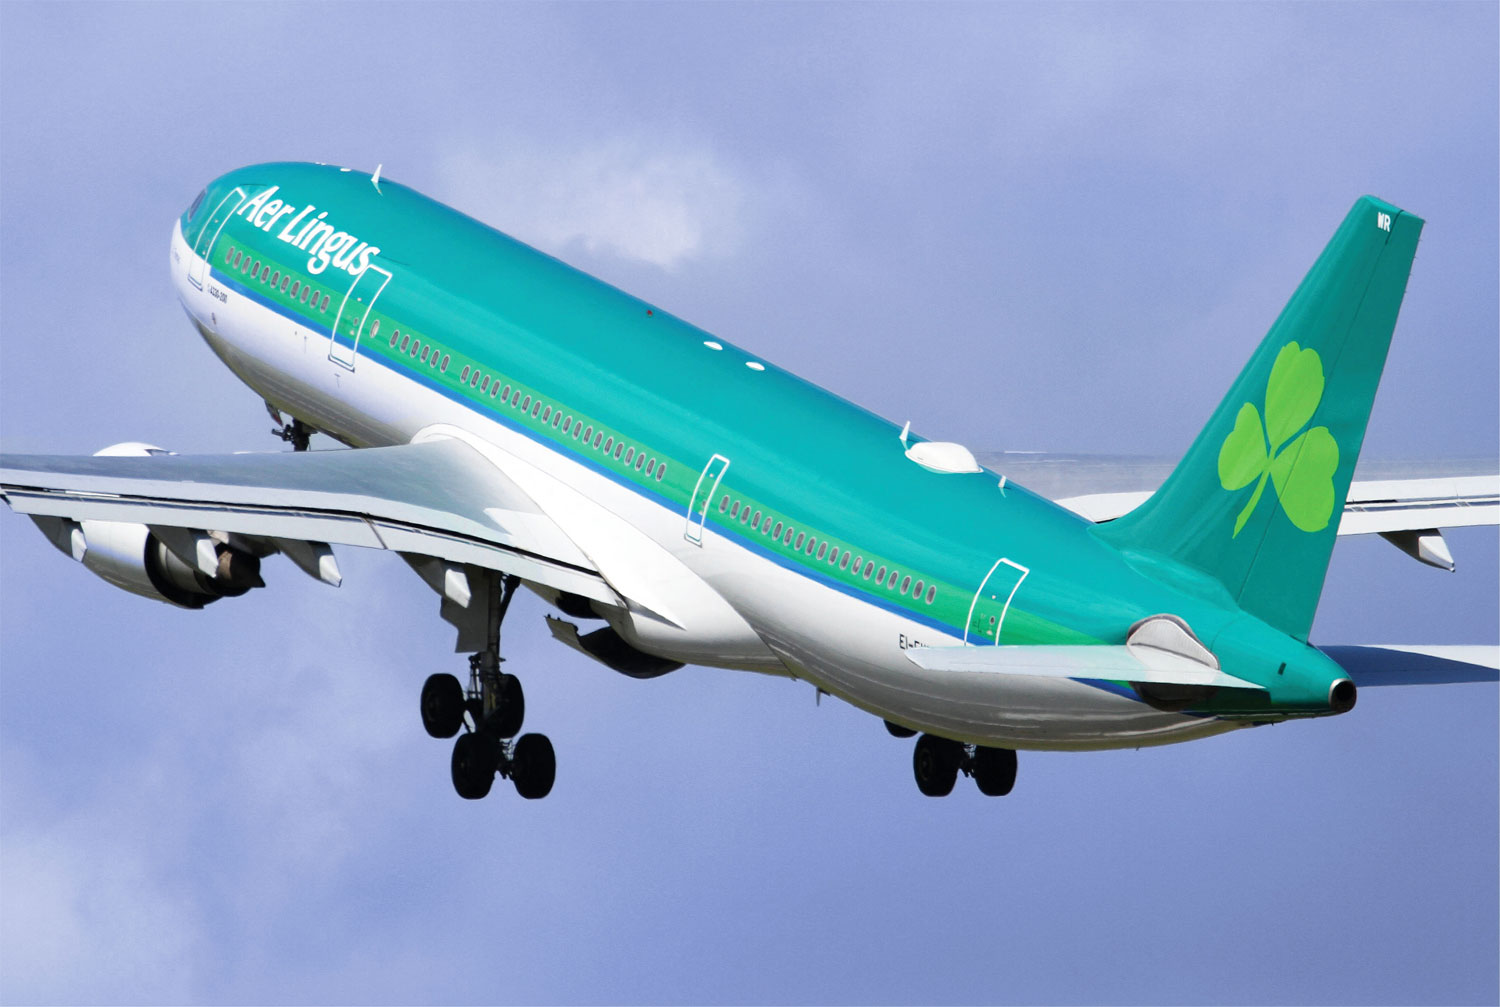 Gina Baksa experiences her first Aer Lingus Business Class flight from London Heathrow to Newark, via Dublin